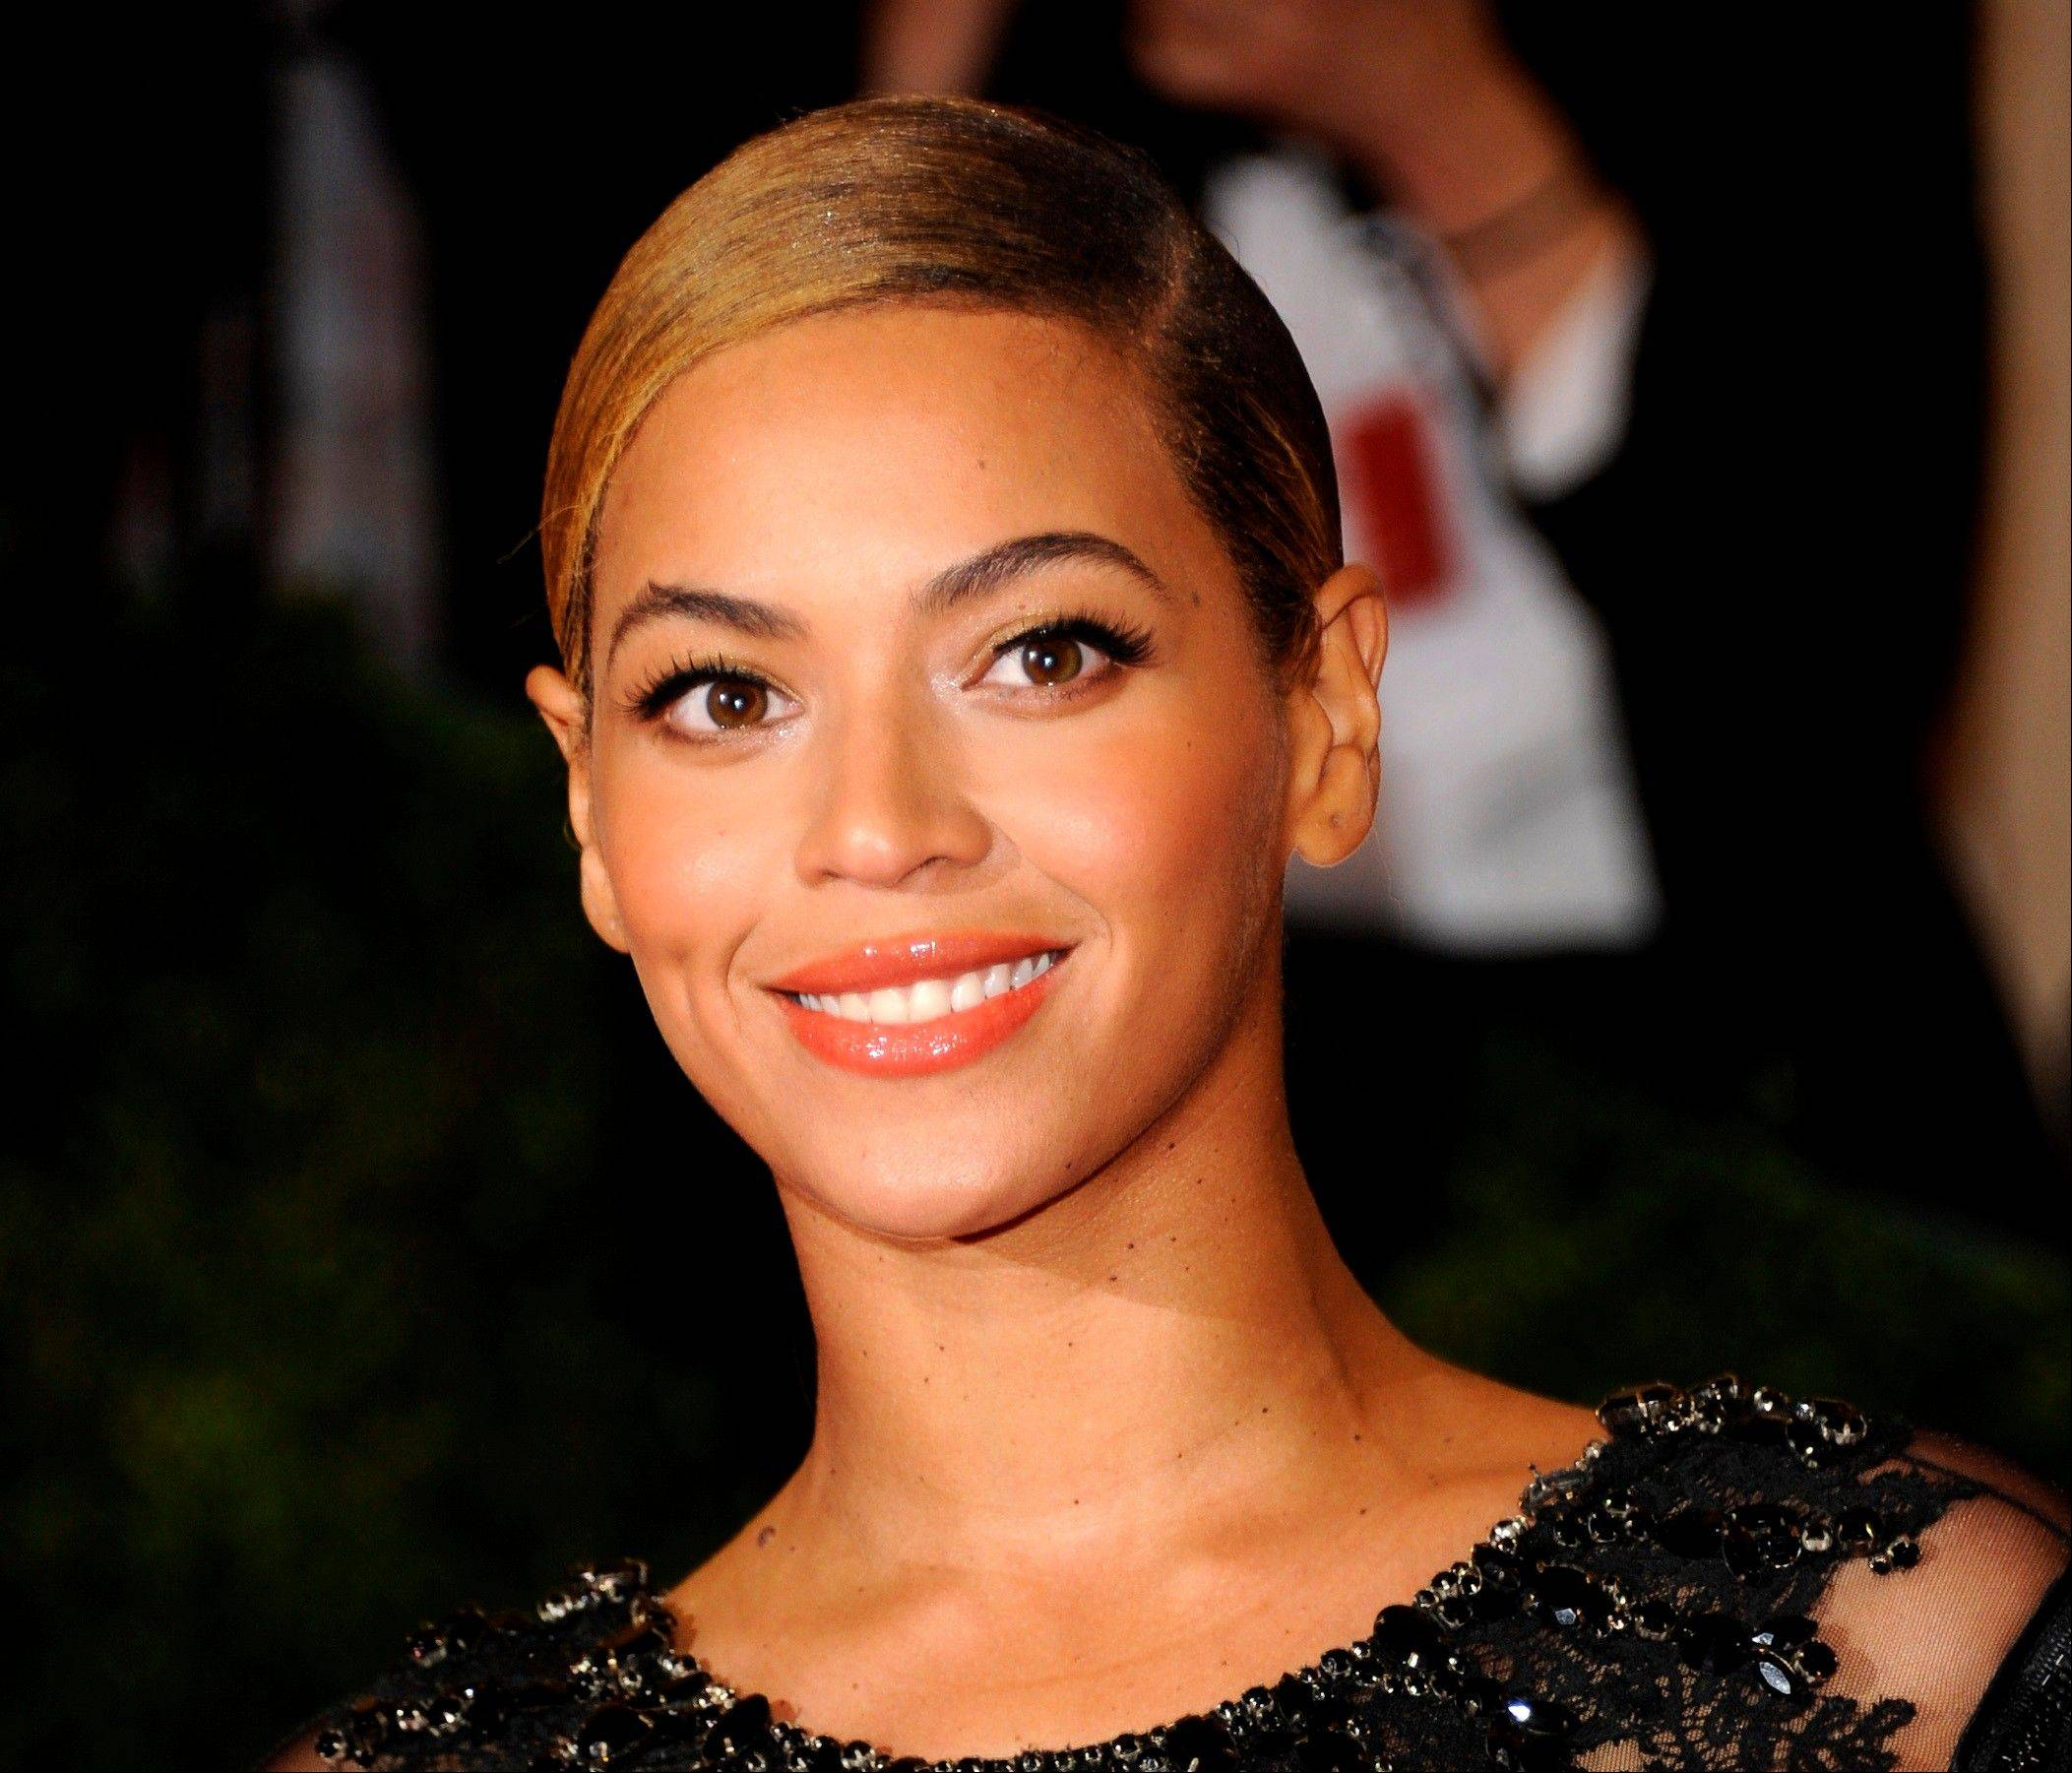 Beyonc� will sing the national anthem at President Barack Obama�s inauguration ceremony on Jan. 21.